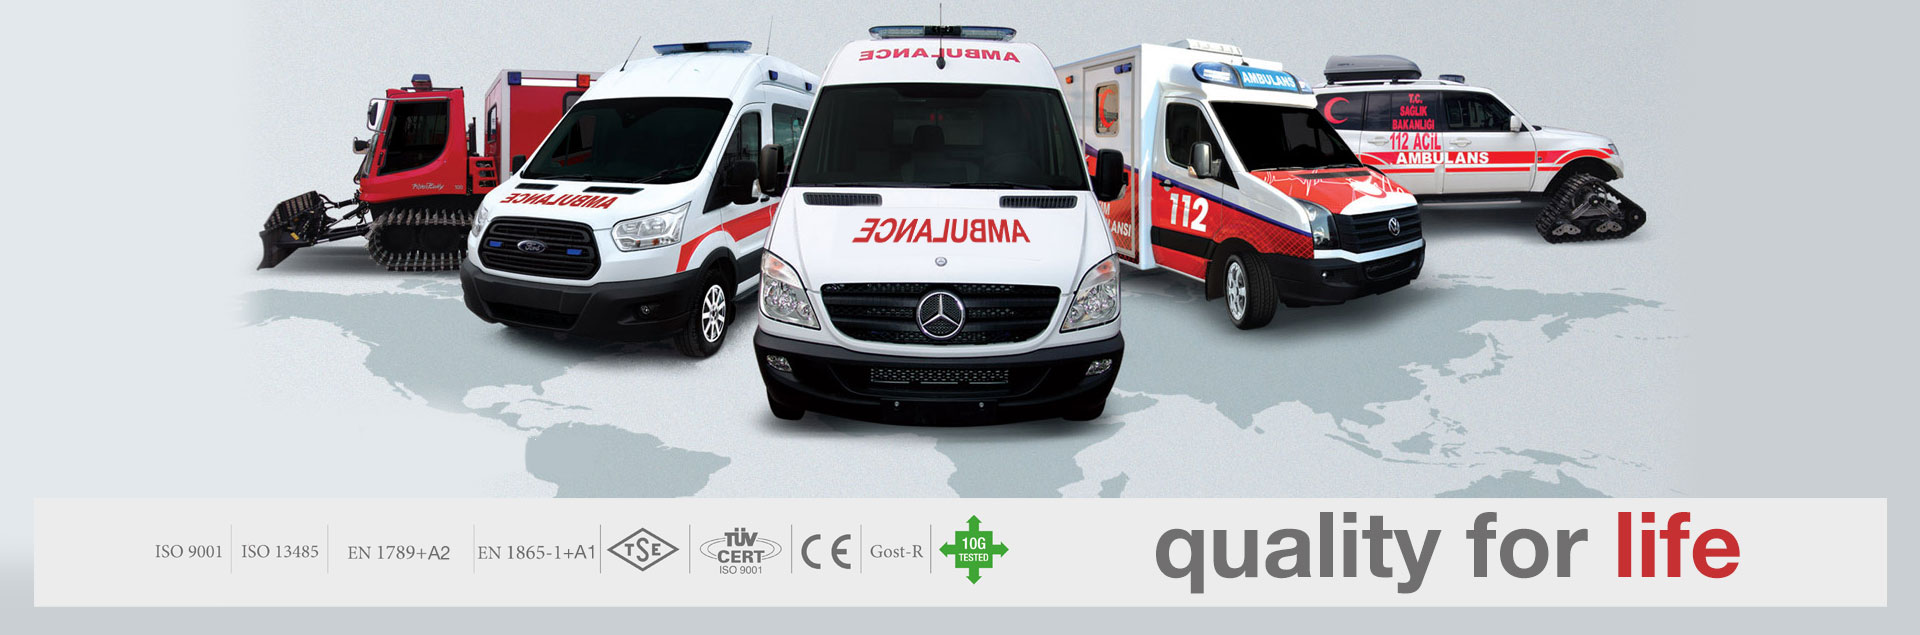 EMS Emergency Mobile Systems